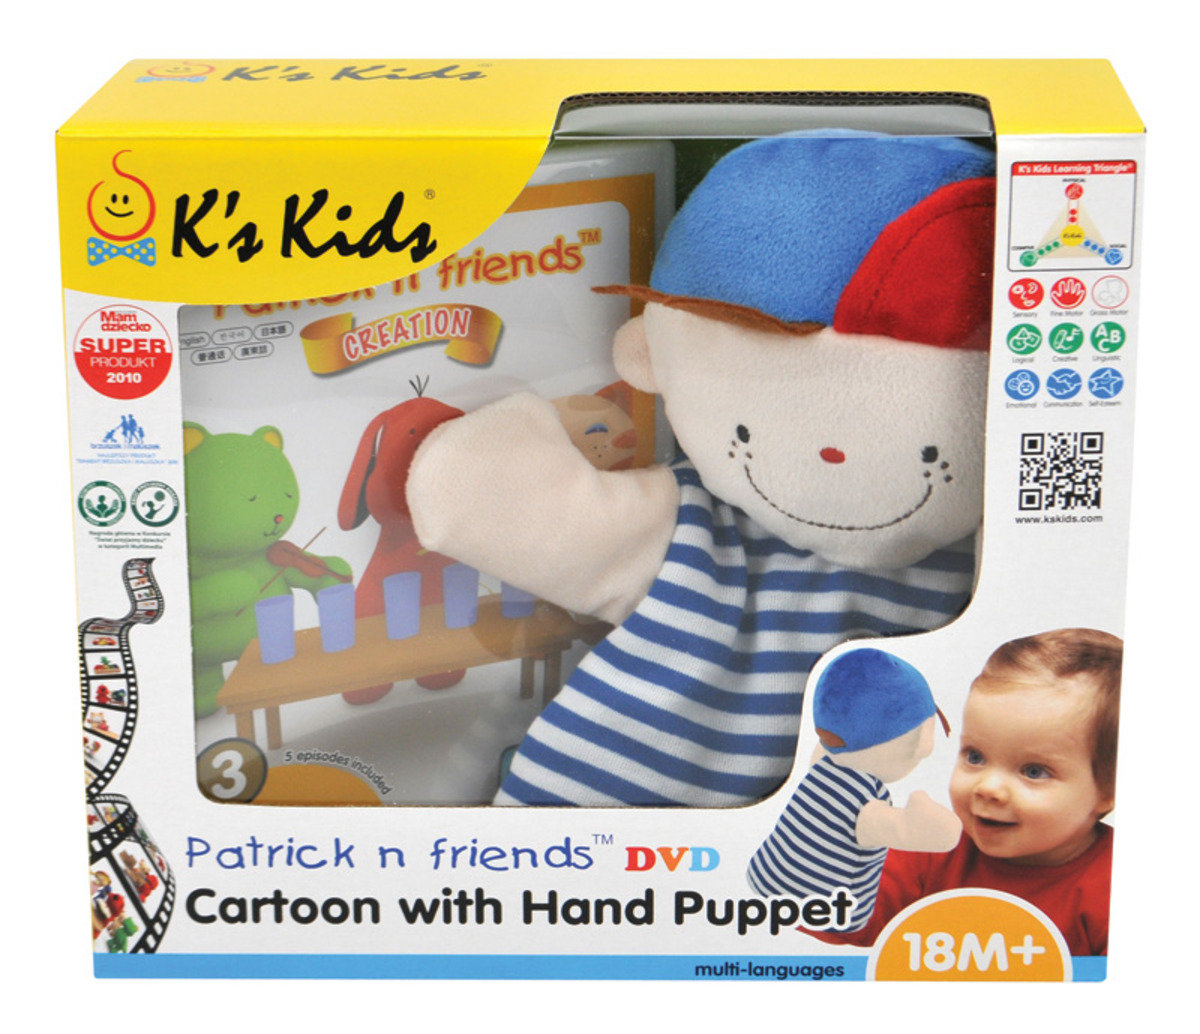 KC91102-Patrick n Friends DVD Cartoon with Hand Puppet - Wayne